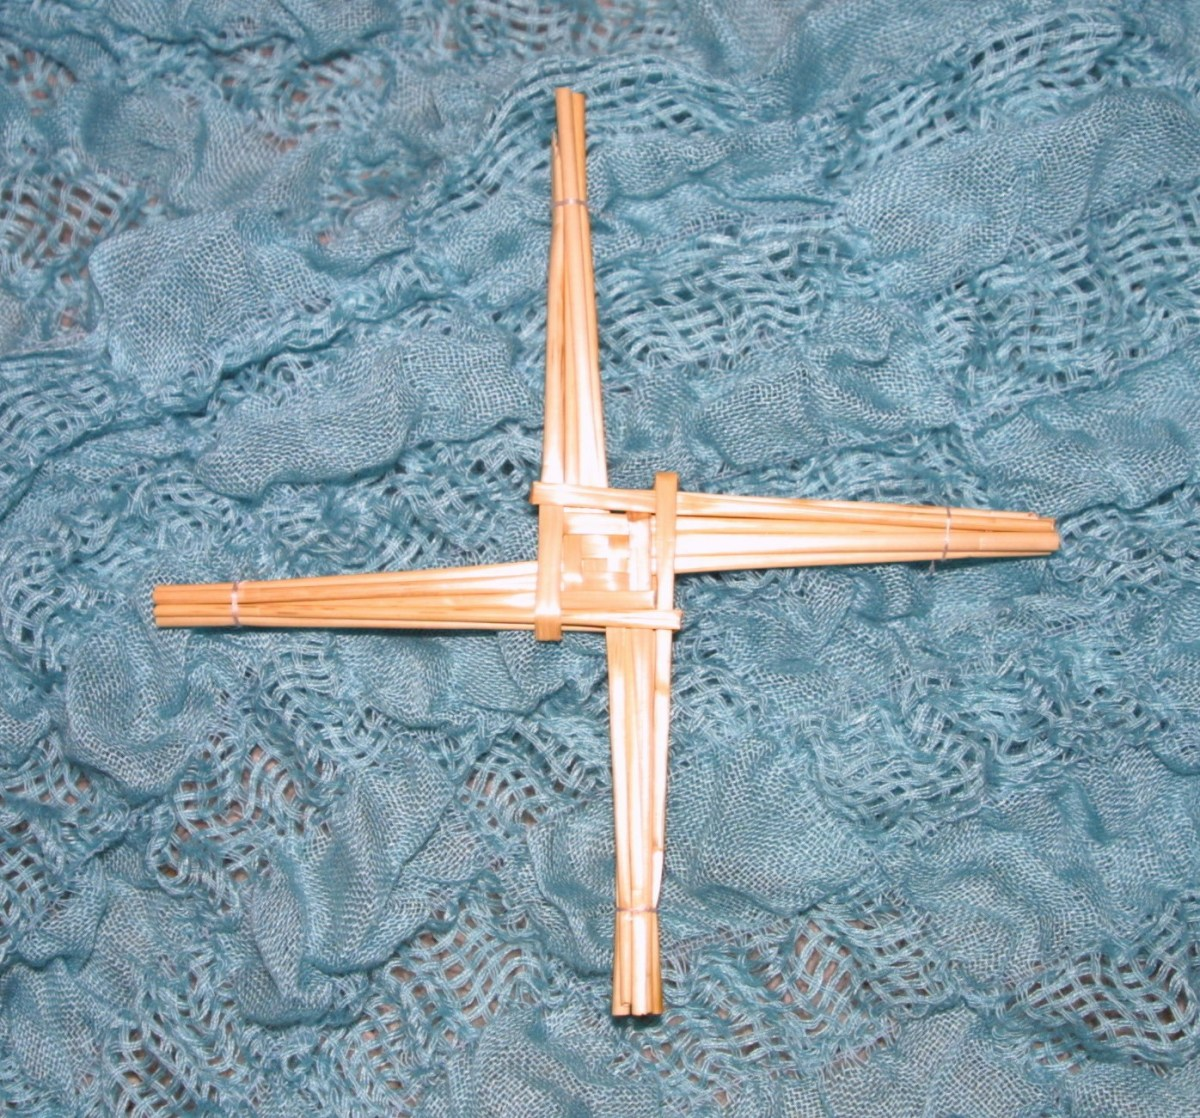 How to Make a St. Brigid's Cross